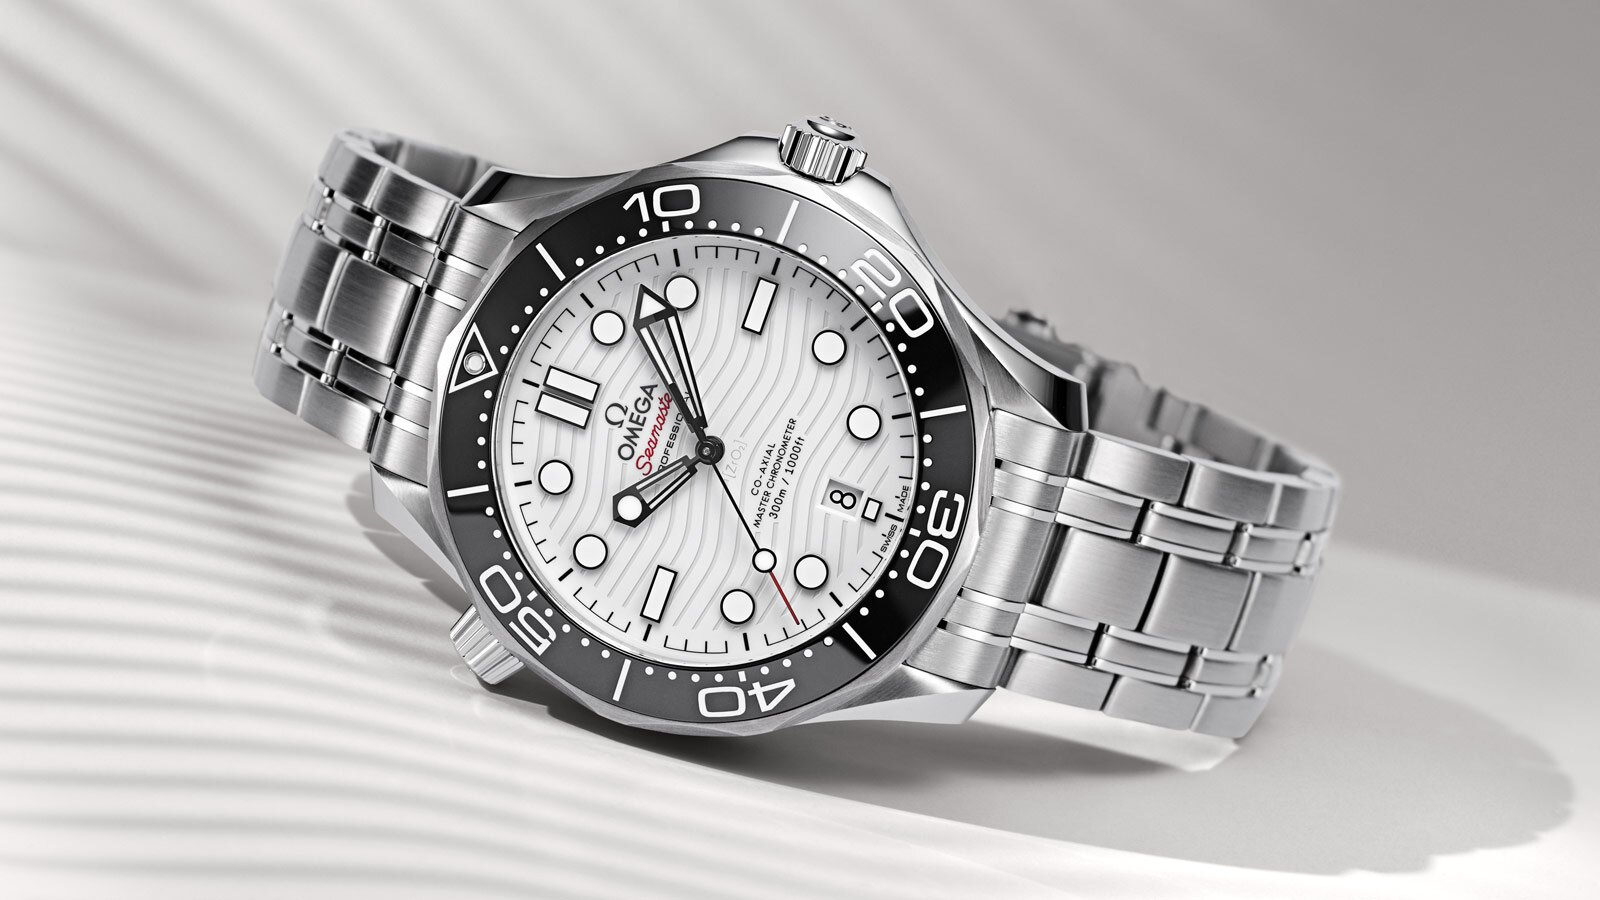 The Seamaster Diver 300 M is best choice for people who are interested in diving watches.